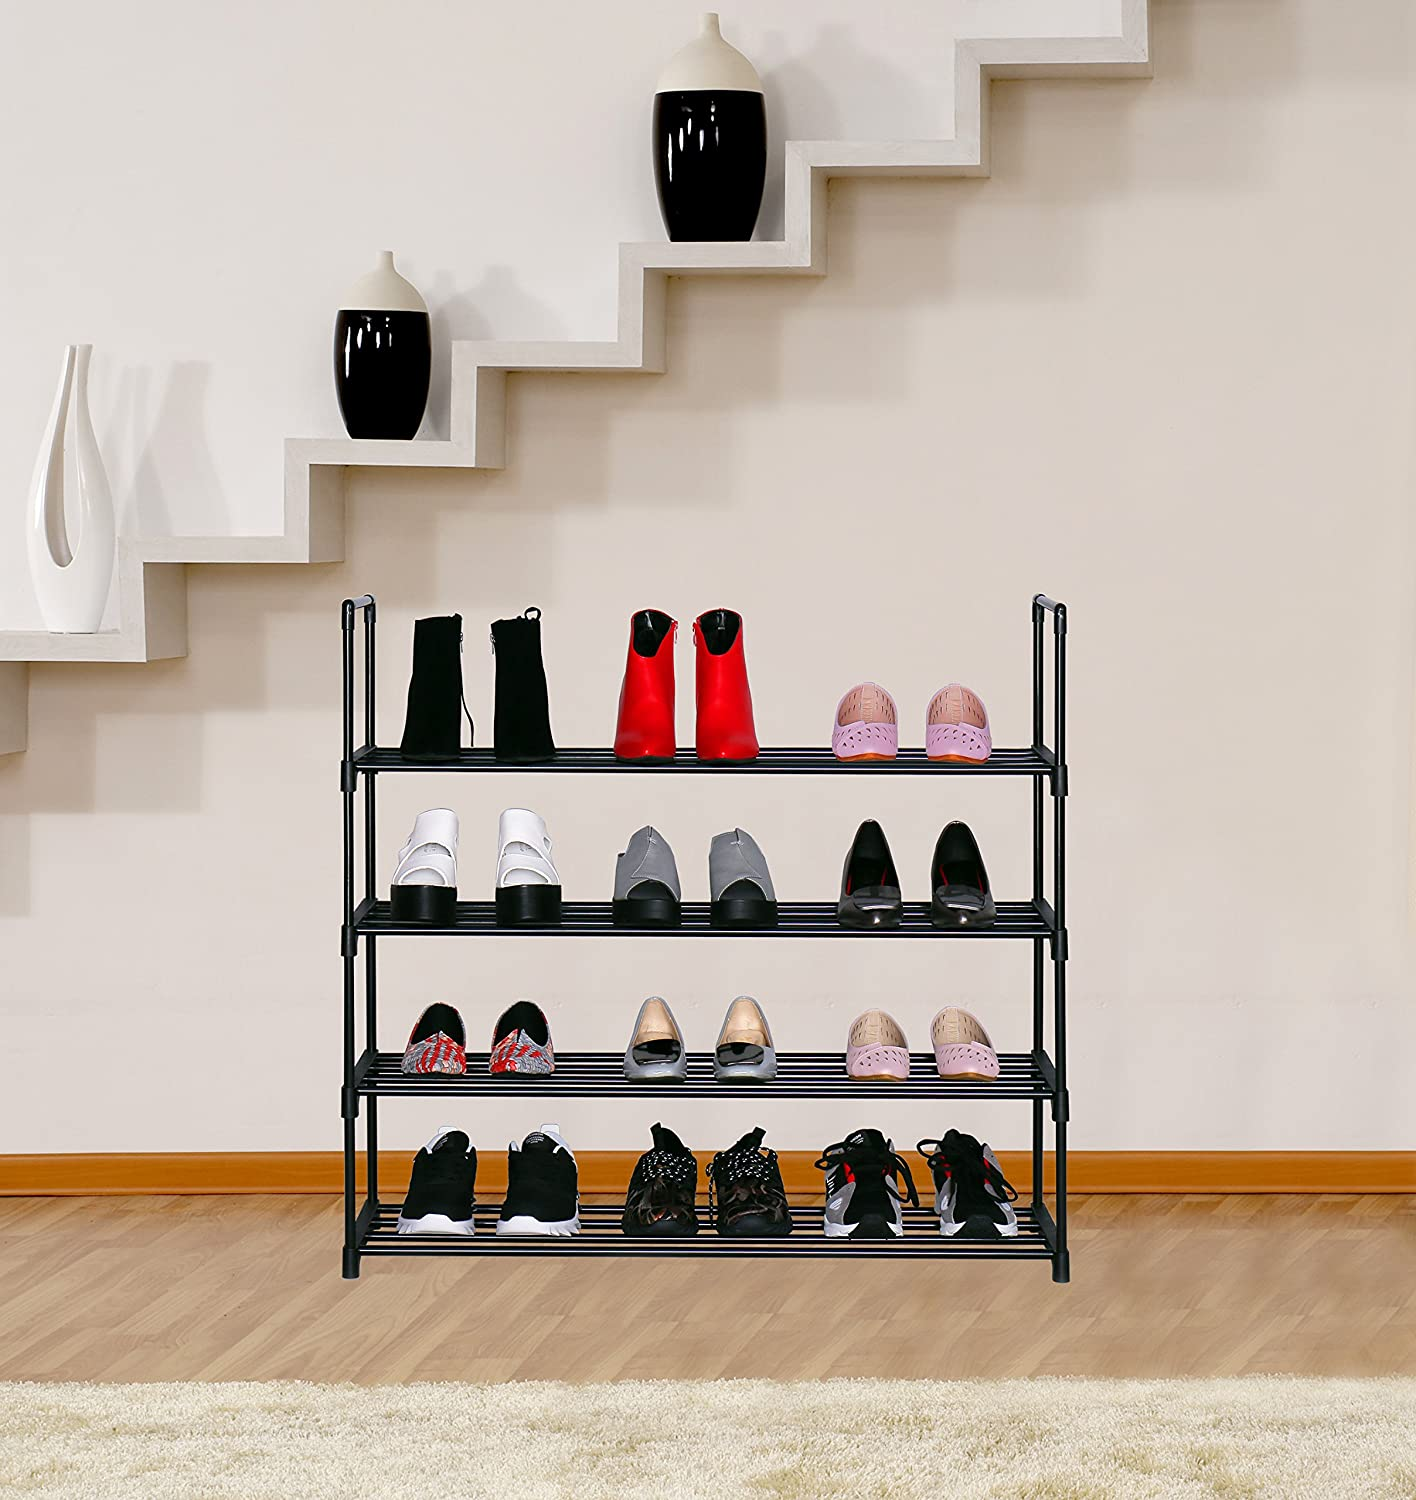 "HOMEFORT 4-Tier Shoe Rack, Metal Shoe Tower,20 Pairs Shoe Storage Shelf, Entryway Stackable Shoes Organizer with 4 Tiers Metal Shelves in Black,35.6"" W x11.82"" D x33.27"" H: Home Improvement"